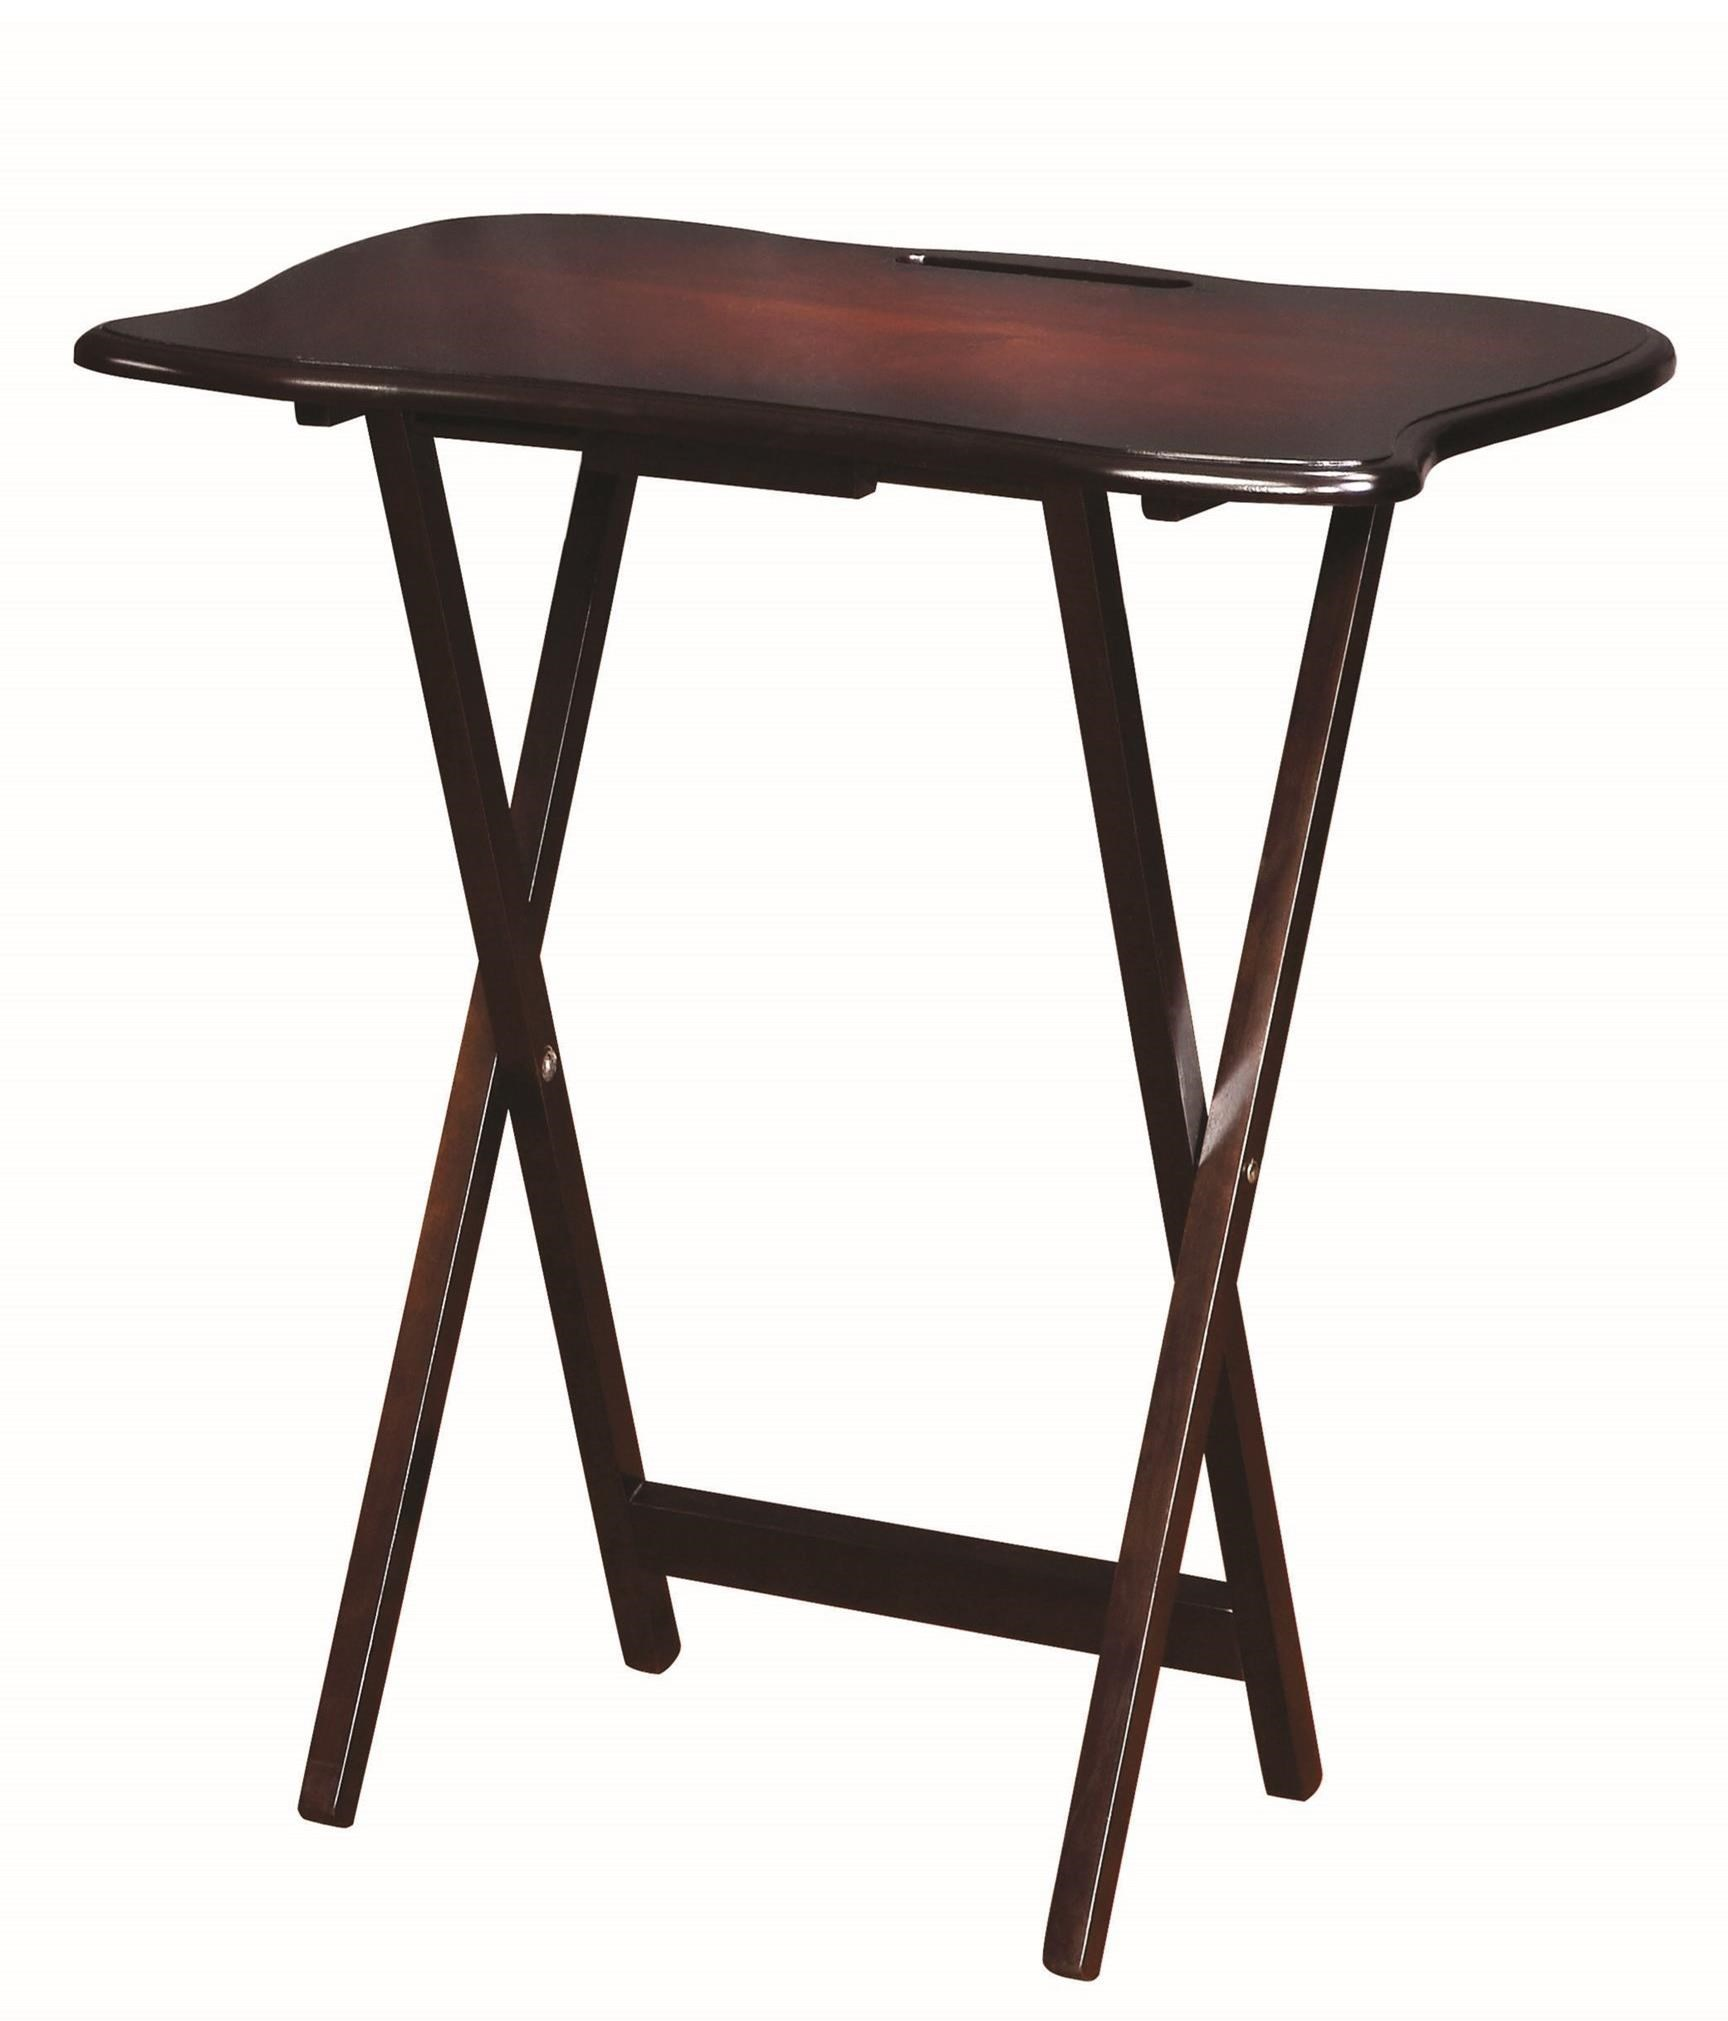 Coaster Accent Tables Tray Table - Item Number: 902716